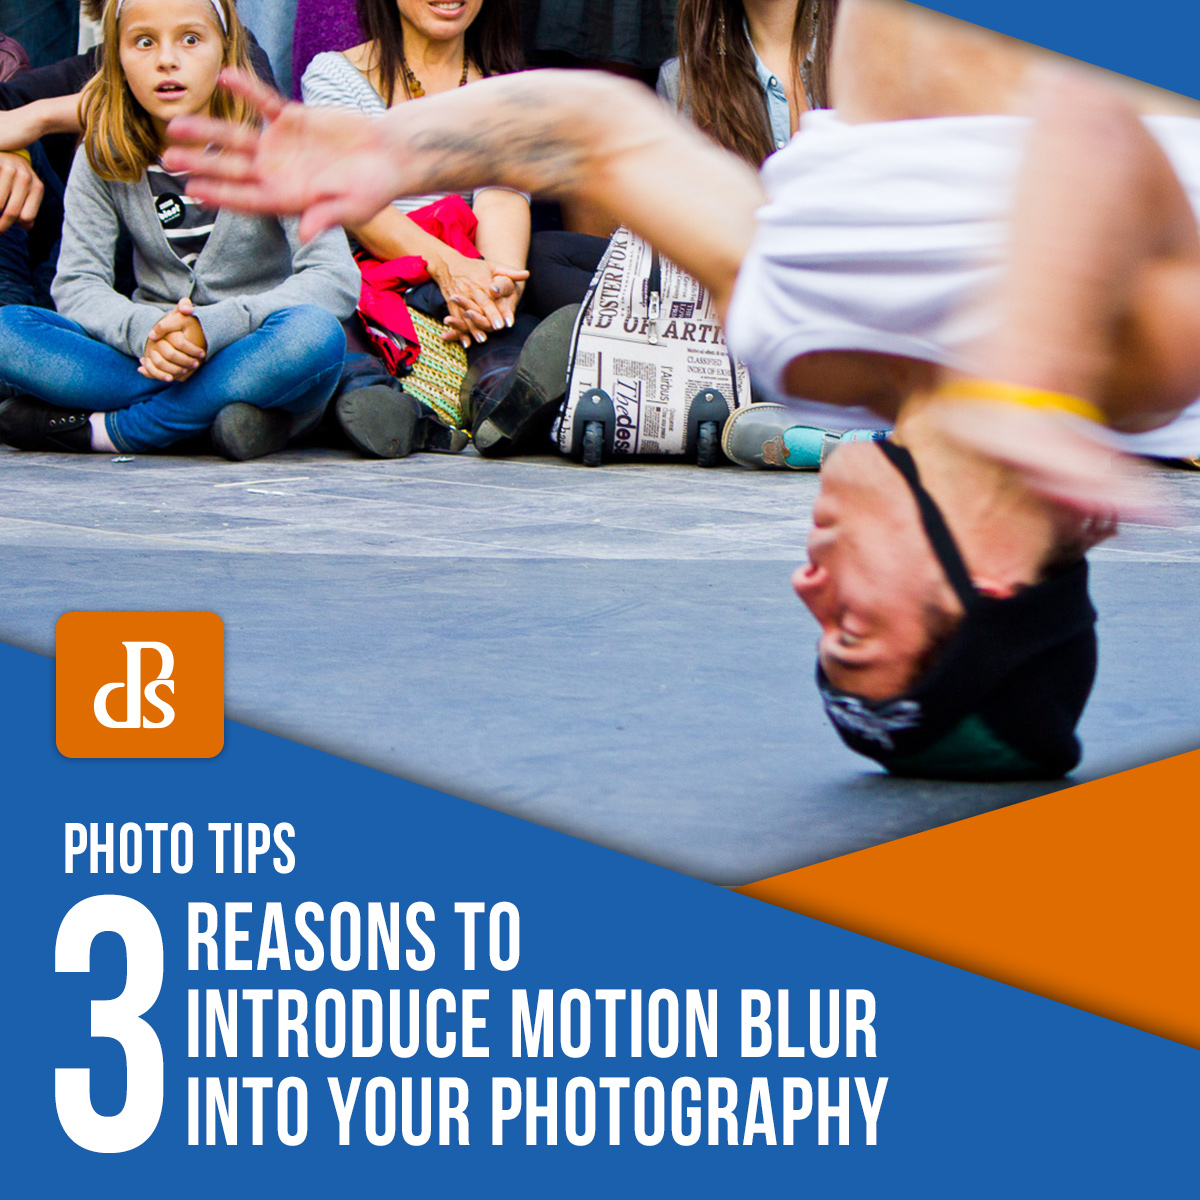 https://i1.wp.com/digital-photography-school.com/wp-content/uploads/2020/05/dps-reasons-to-introduce-motion-blur-in-photography.jpg?ssl=1